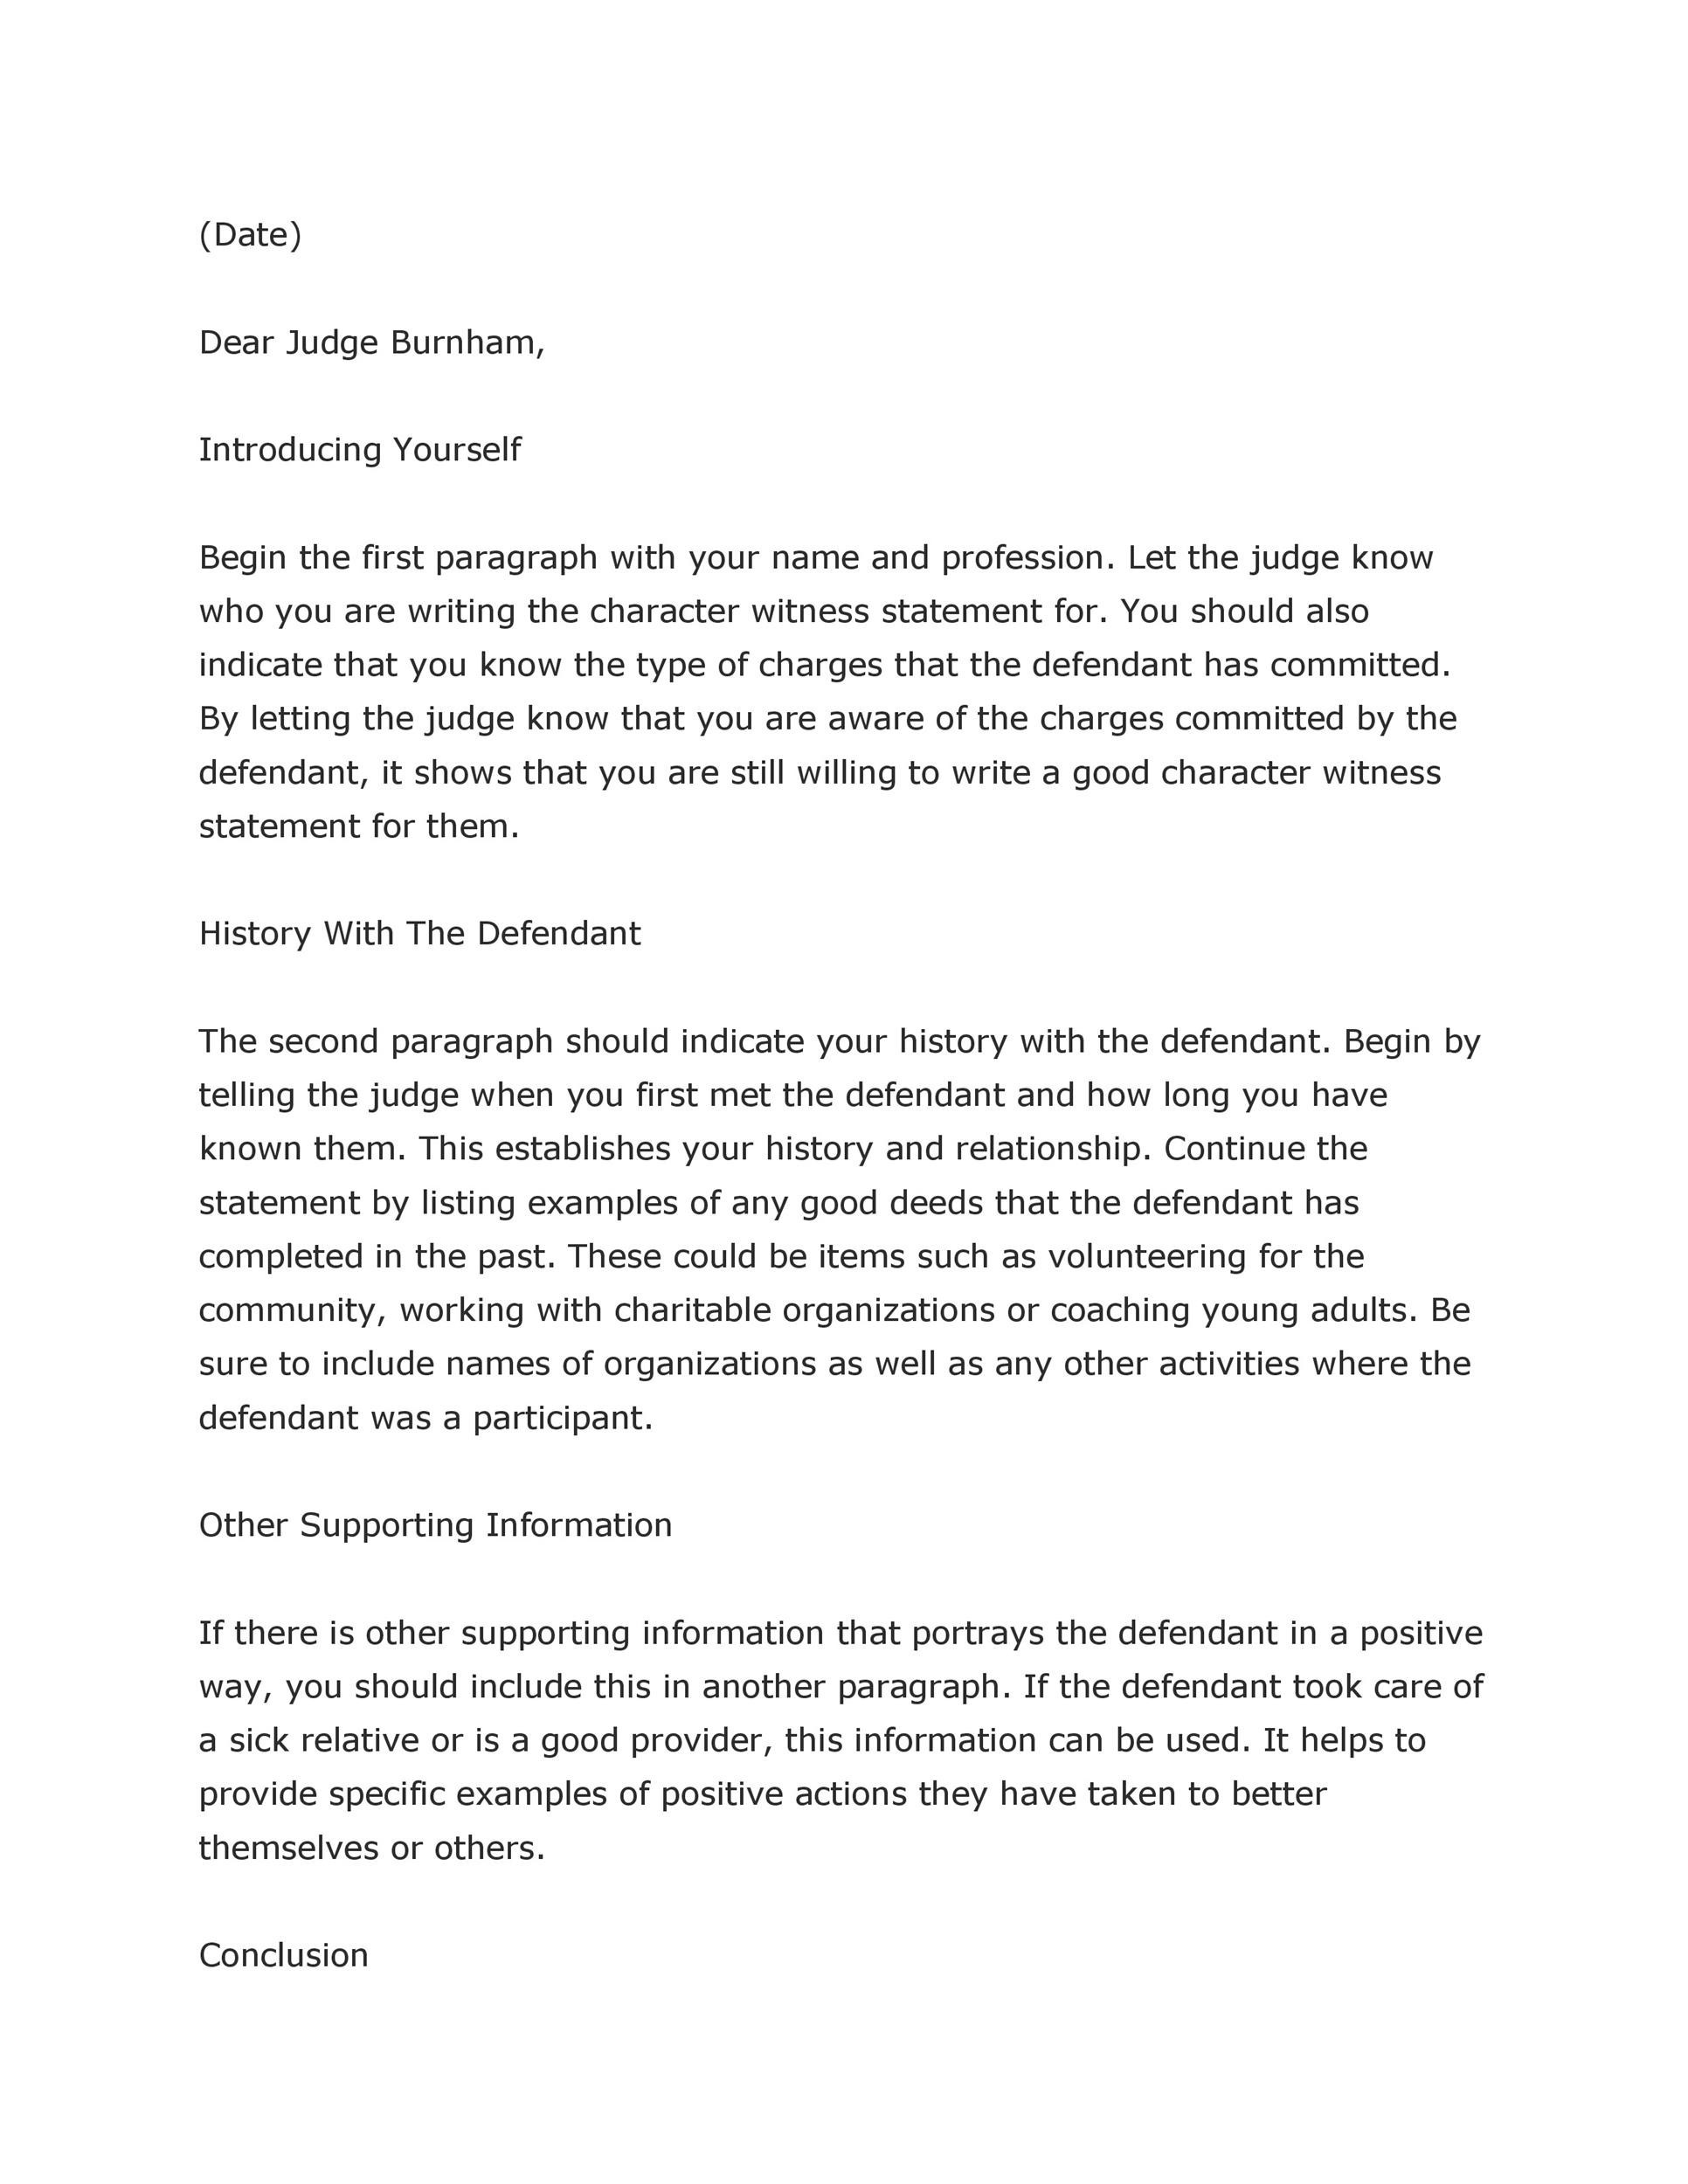 Character Letter To Judge Example from templatelab.com